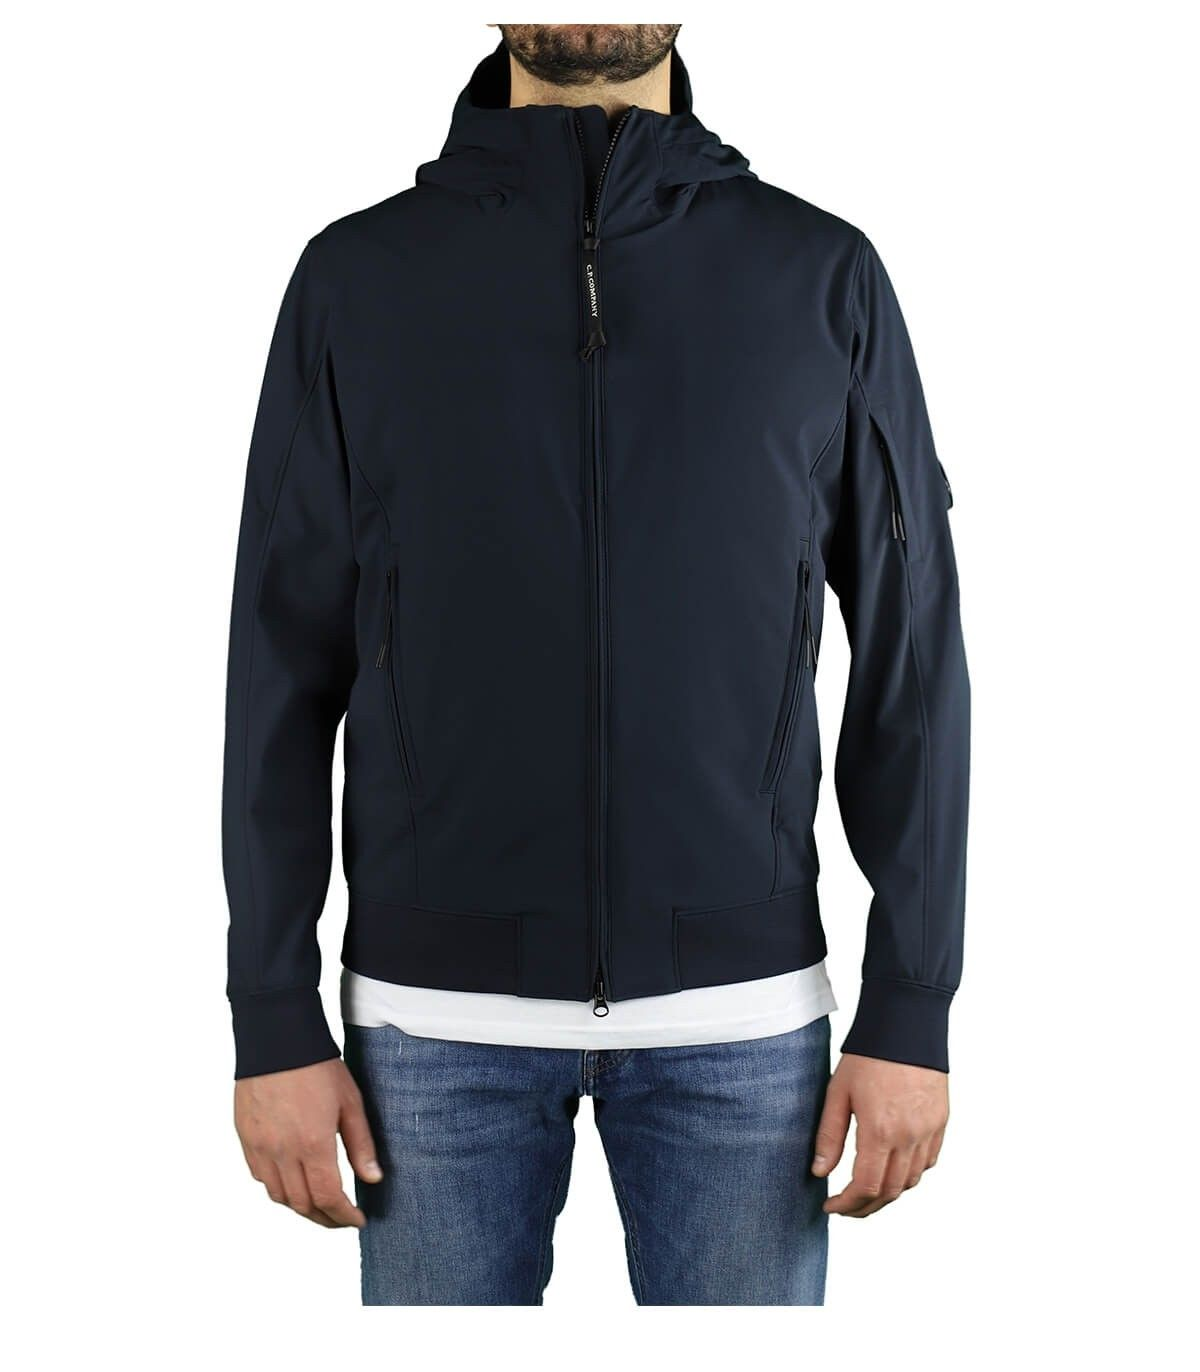 C.p. Company Jackets CP COMPANY MEN'S 10CMOW014A005968A888 BLUE POLYAMIDE OUTERWEAR JACKET